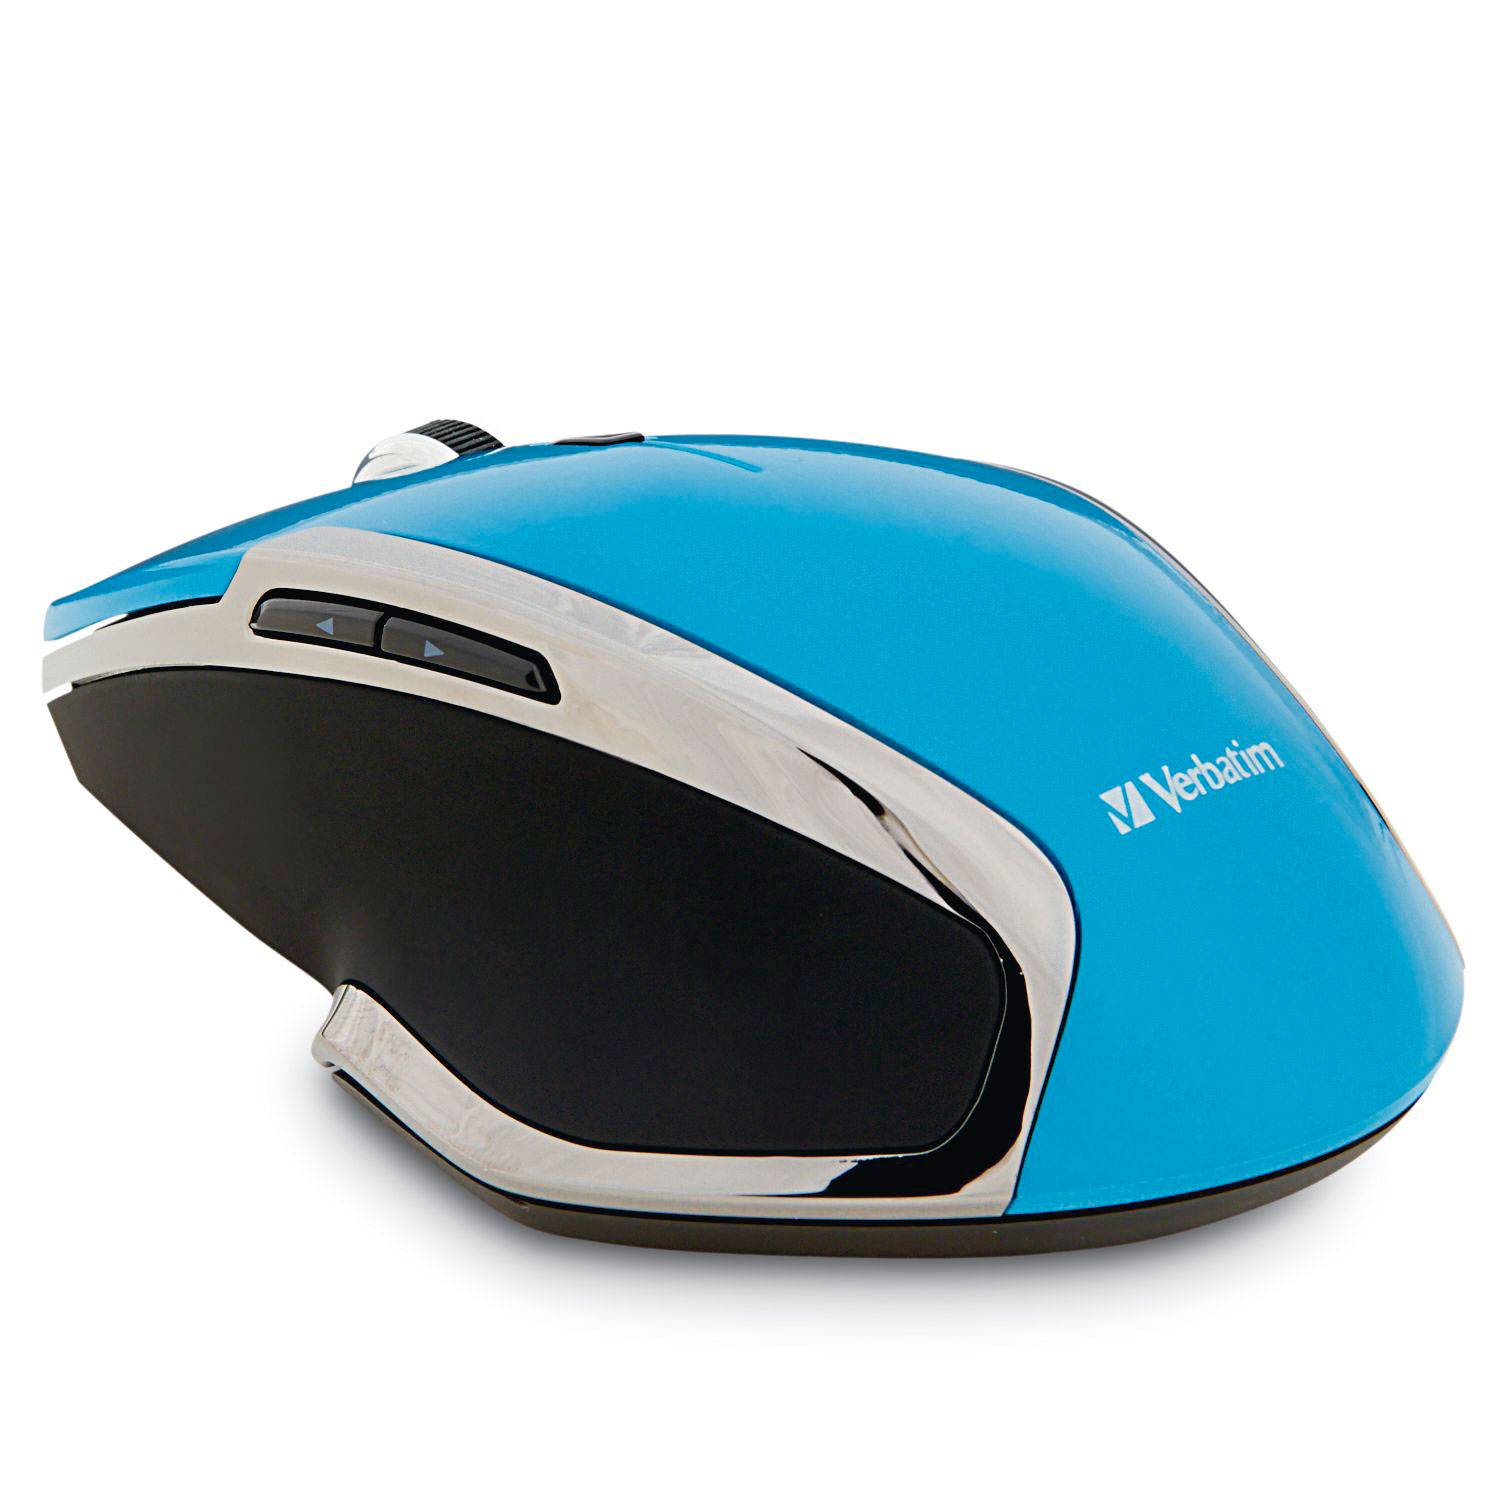 Verbatim Wireless Notebook 6-Button Deluxe LED Mouse, 99016, Blue